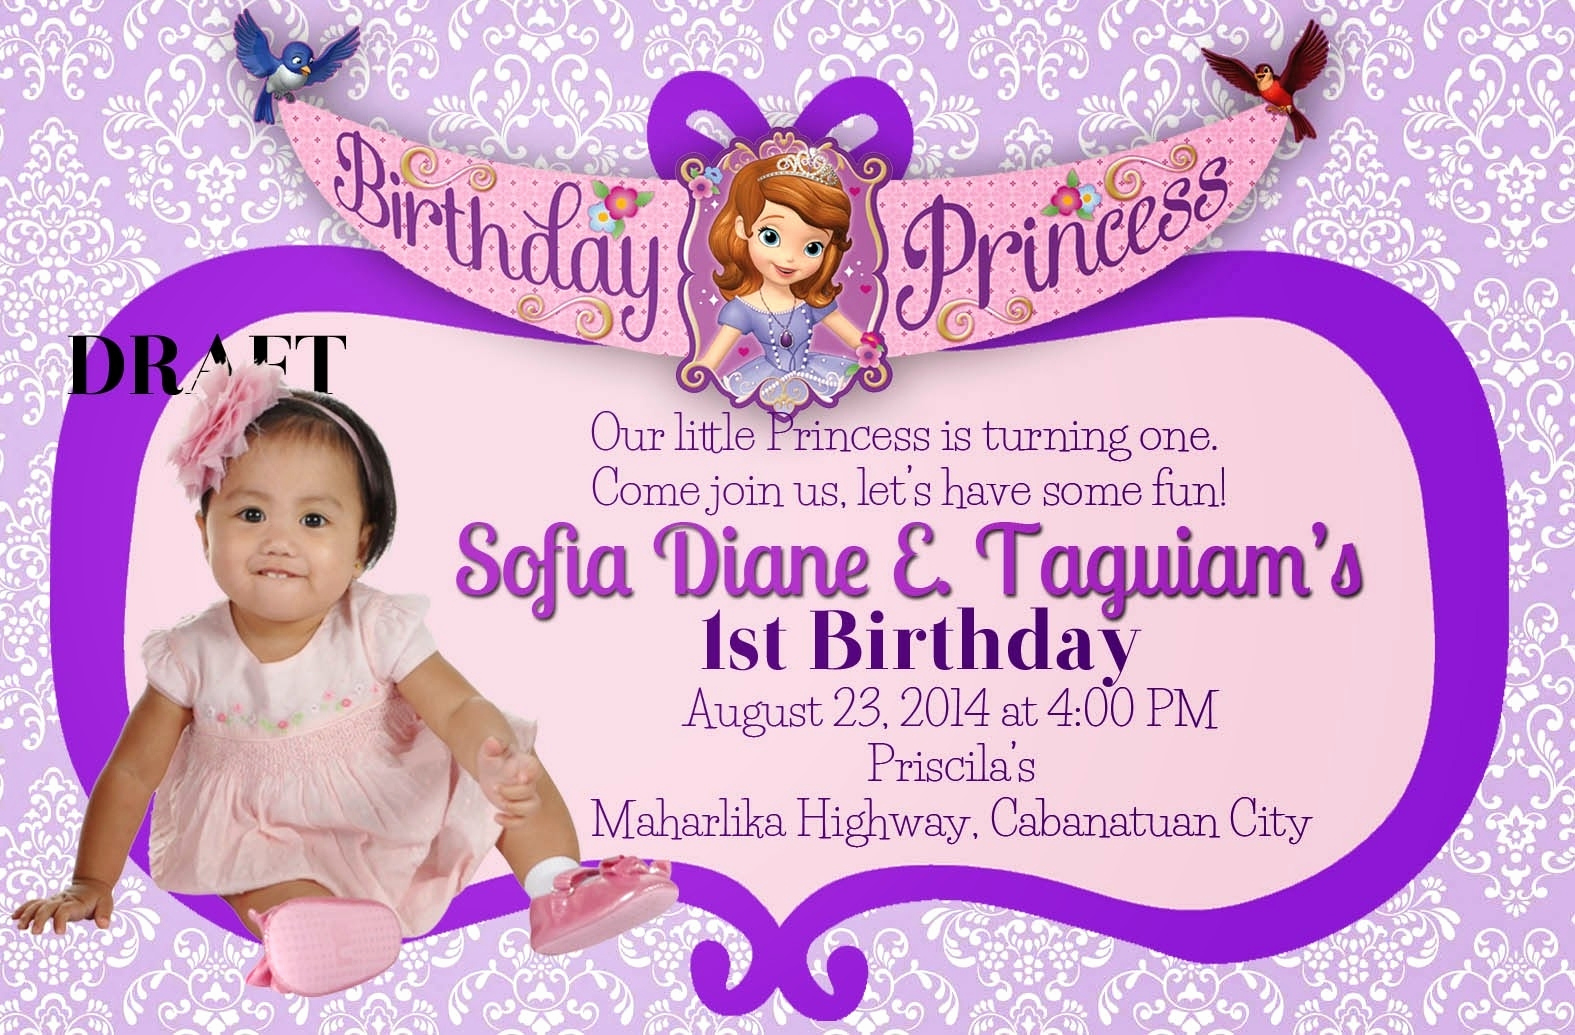 Sofia the First Invitation Elegant sofia the First Invitation Wording Cobypic